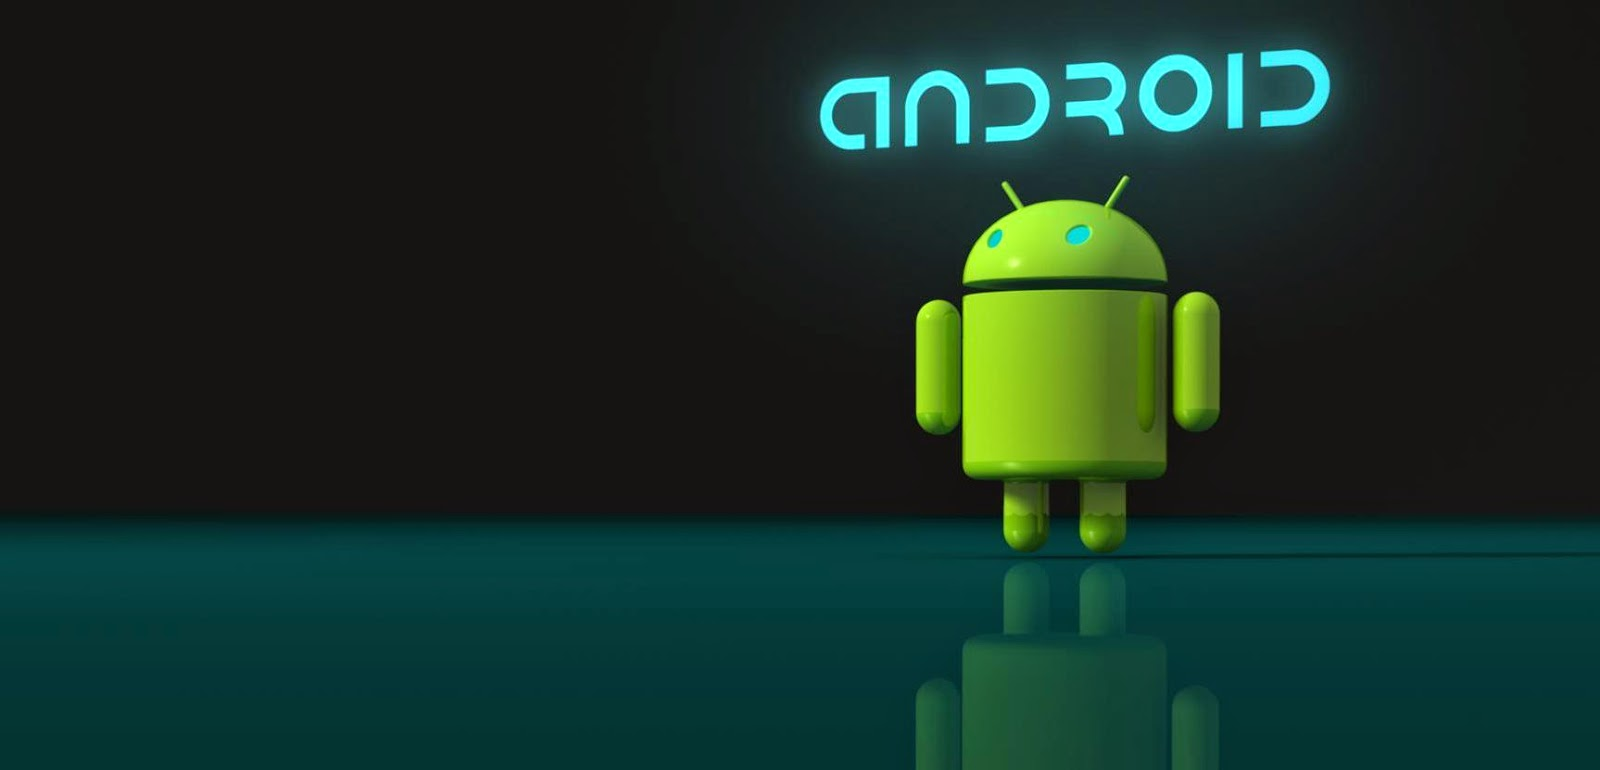 gratis apps android download